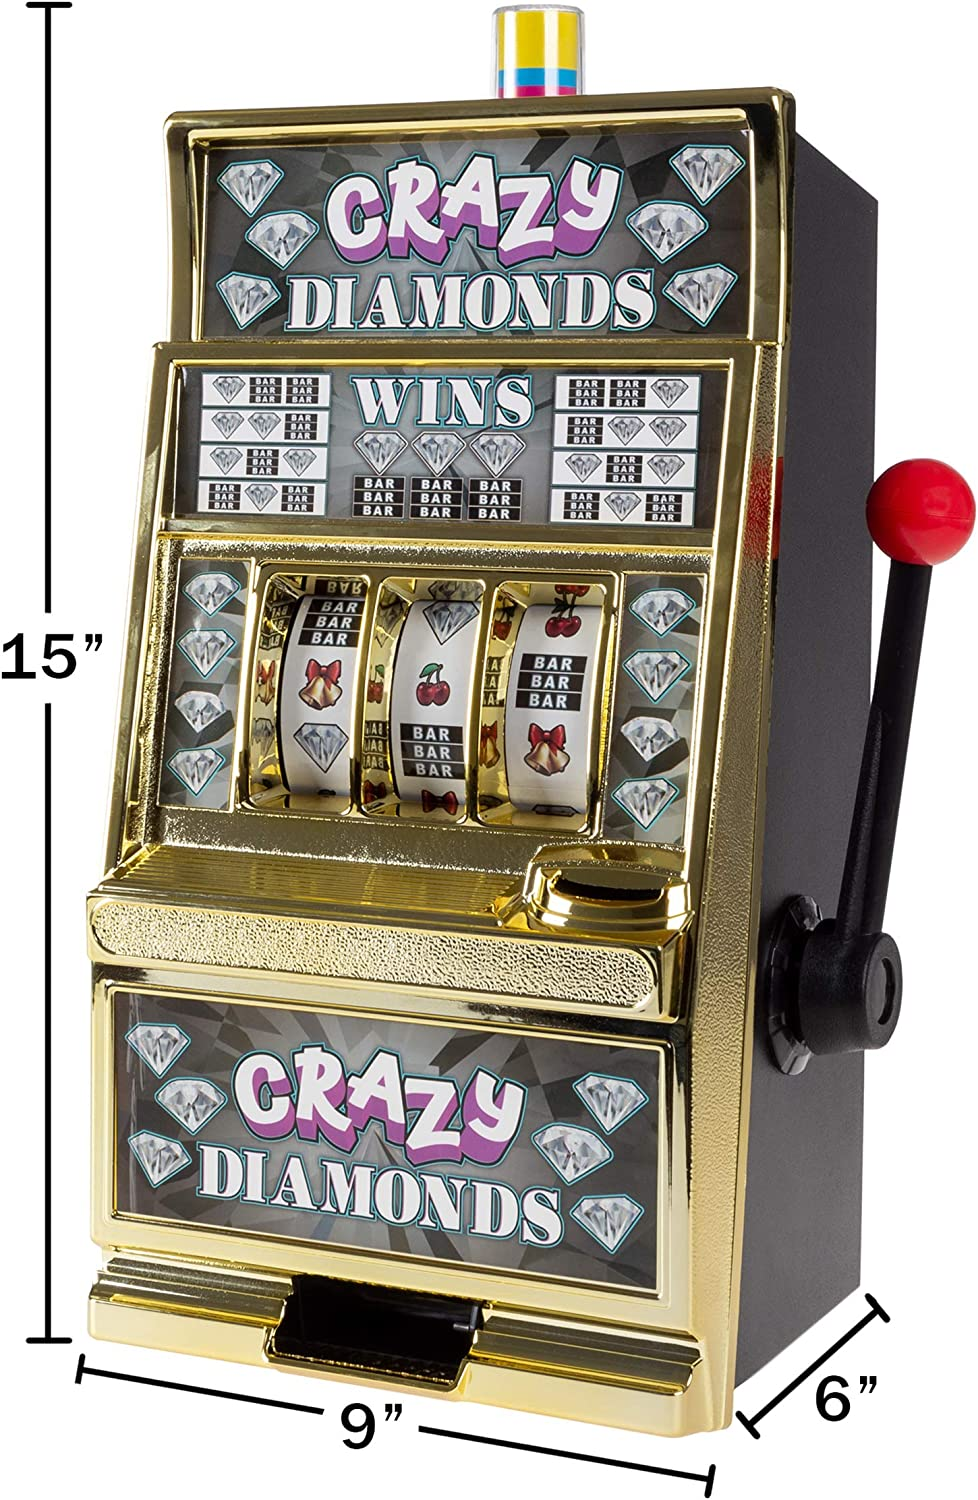 Crazy Diamonds Trademark Gameroom Slot Machine Coin Bank Electronic Realistic Mini Table Top Novelty Casino Toy with Lever for Kids /& Adults